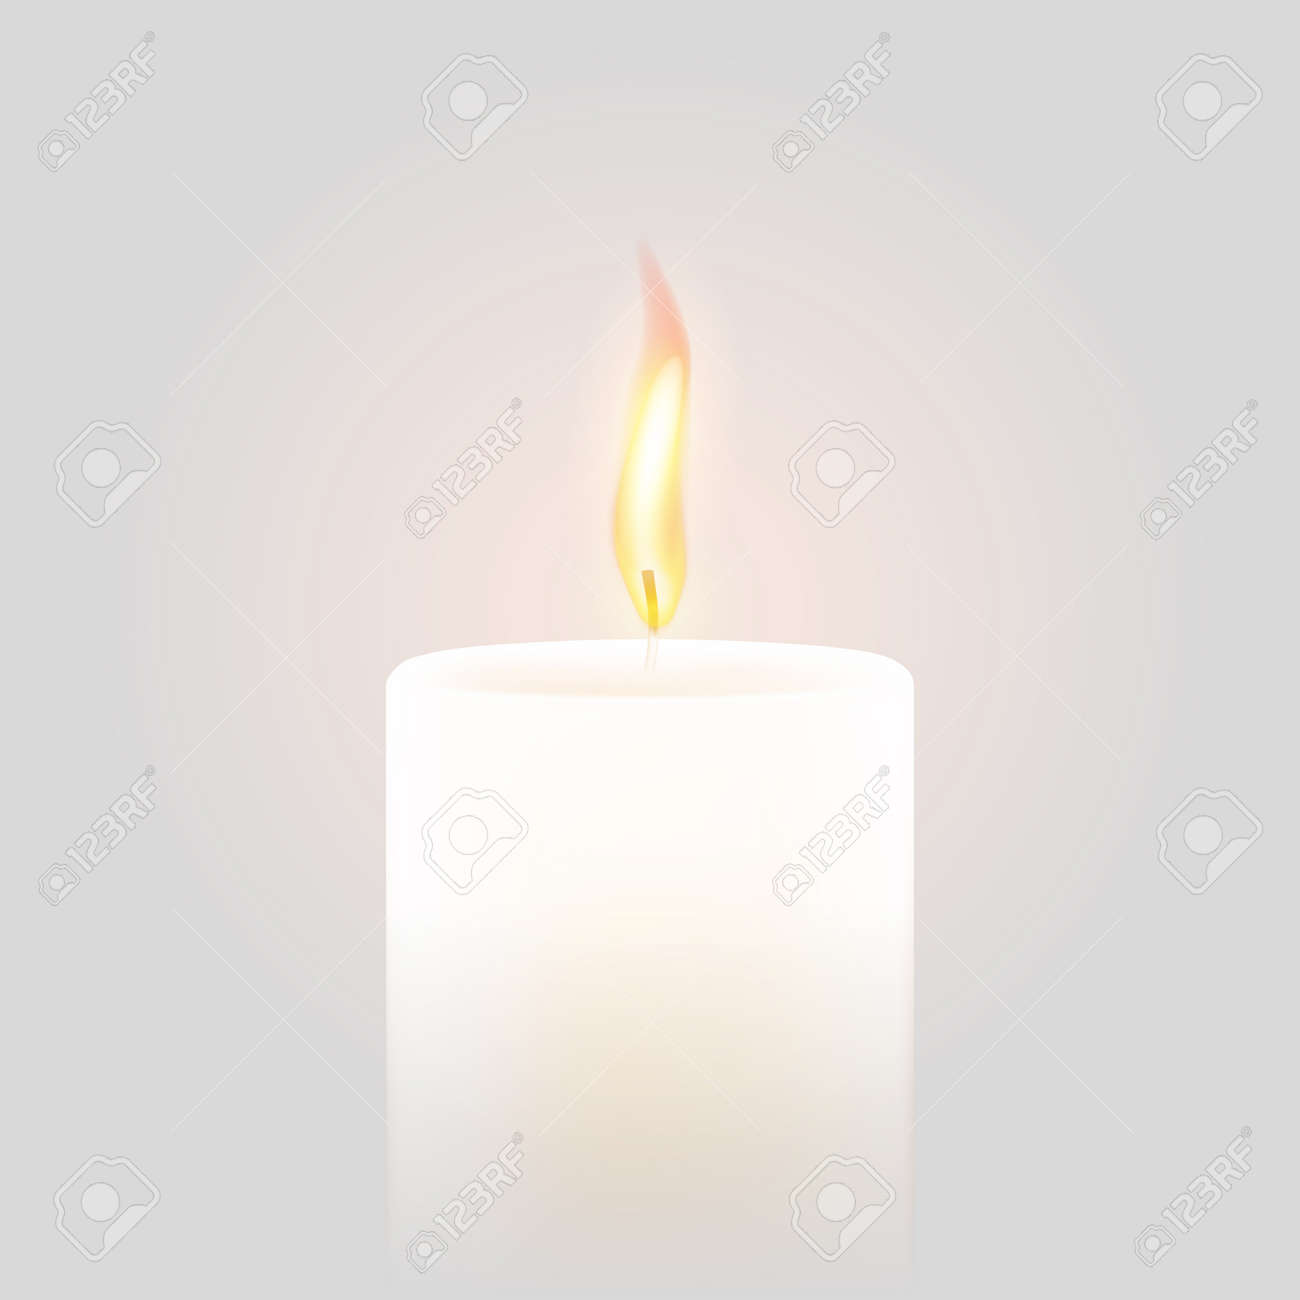 Candle flame burning on vector white background  3D realistic